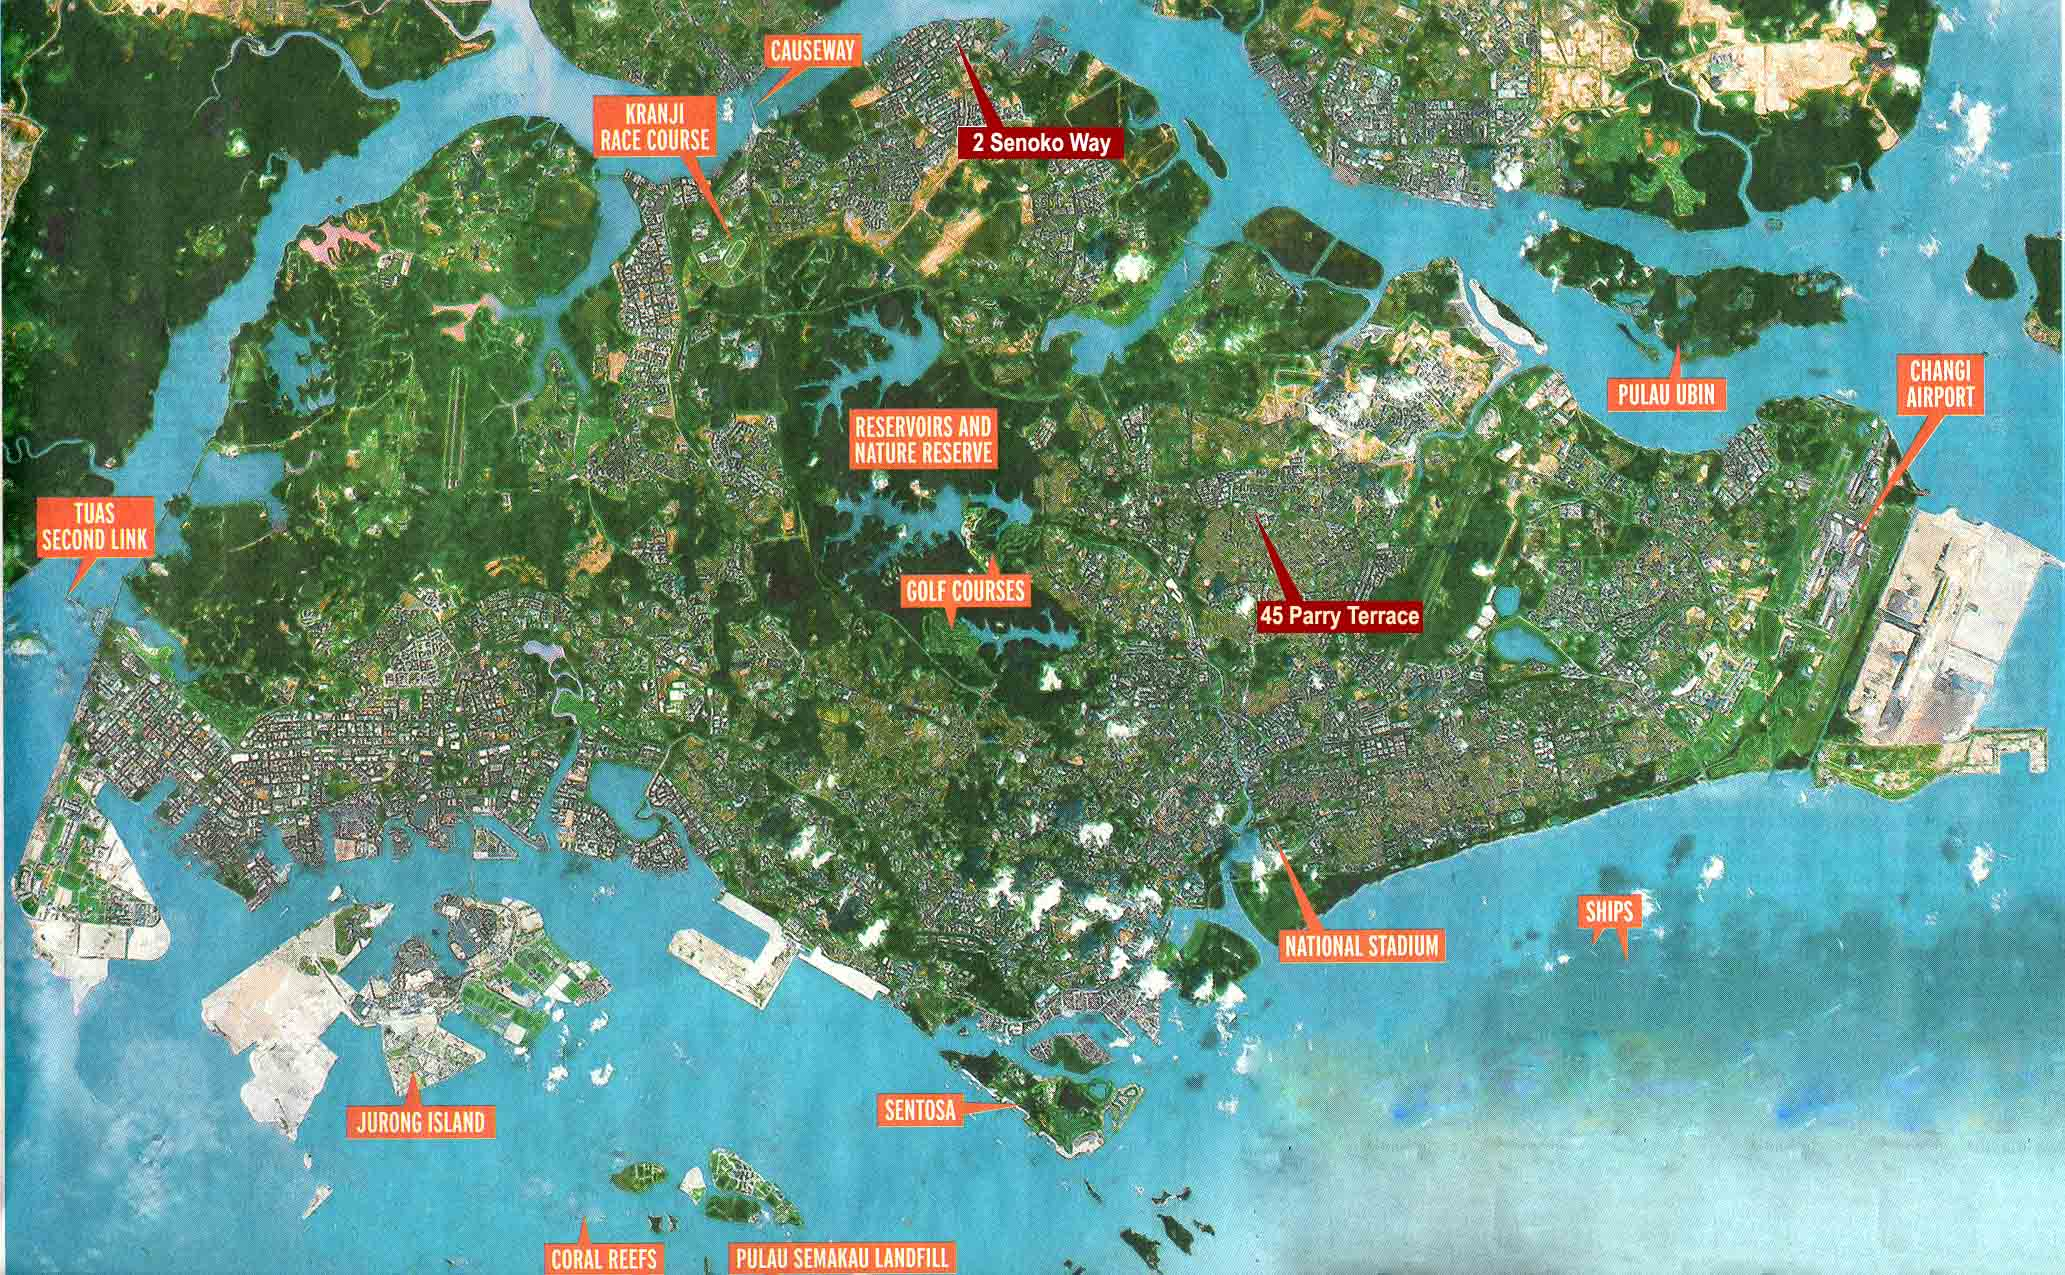 Large singapore city maps for free download and print high detailed map of singapore city 2 gumiabroncs Images